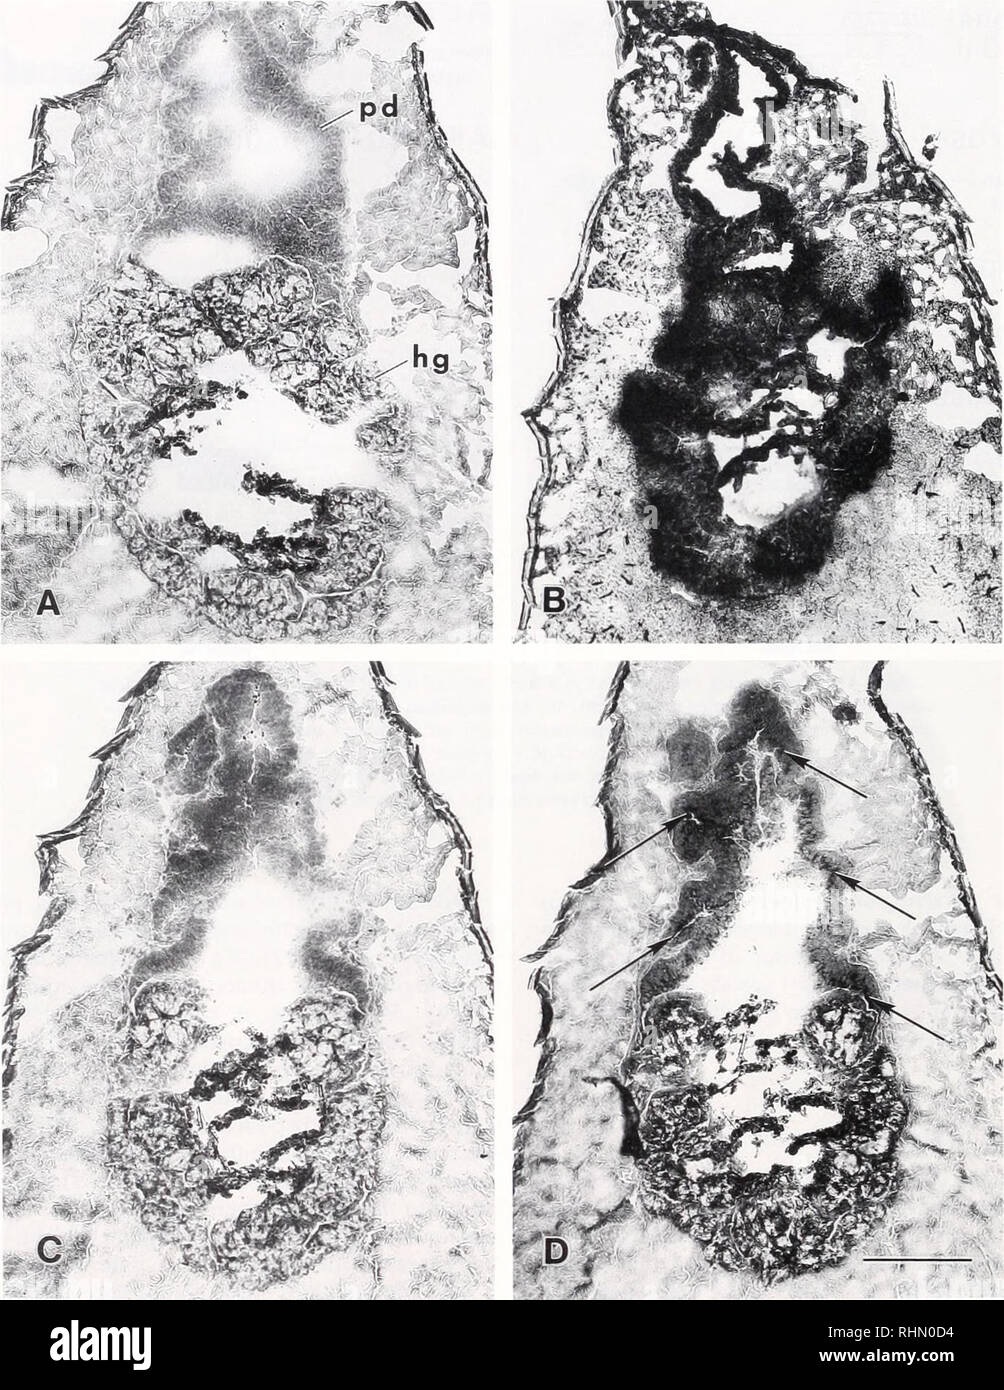 . The Biological bulletin. Biology; Zoology; Biology; Marine Biology. 164 D. L. LOVETT AND D. L. FELDER. Figure 2. Histochemical localization of enzymes in fresh frozen transverse sections of posterior midgut diverticulum and hindgut in Penaeus selij'erus juveniles (PL,4(I). A. control section. B, section incubated with Naphthol AS-LC acetate as substrate to indicate esterase activity. C, section incubated with Naphthol AS-BI as substrate to indicate alkaline phosphatase activity (no precipitate present). D, section incubated with Naphthol AS-MX phosphate as substrate to indicate acid phosphat - Stock Image